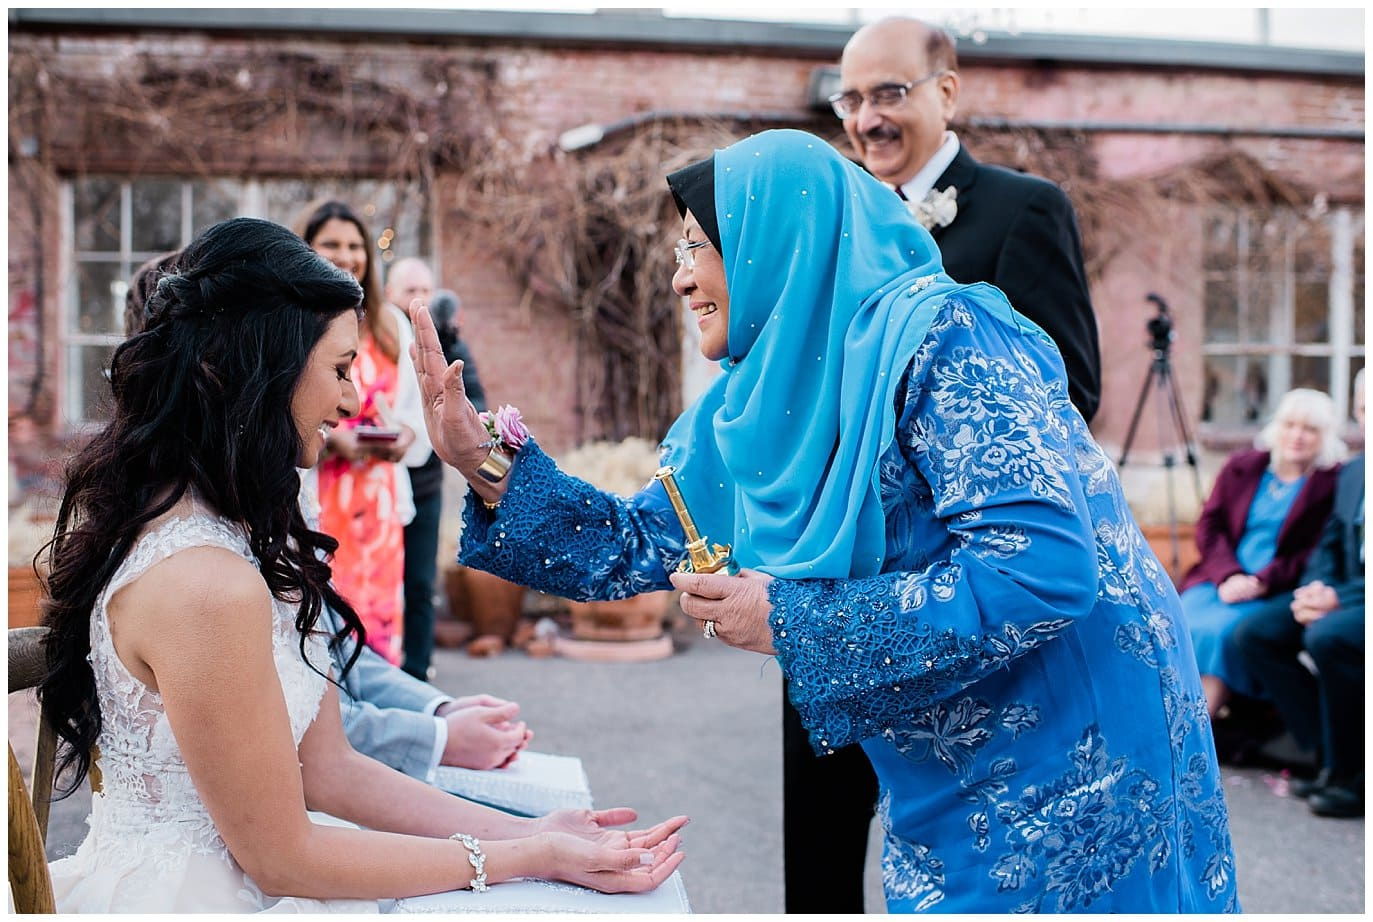 rose water blessing by bride's mother wedding by Blanc Wedding Photographer Jennie Crate